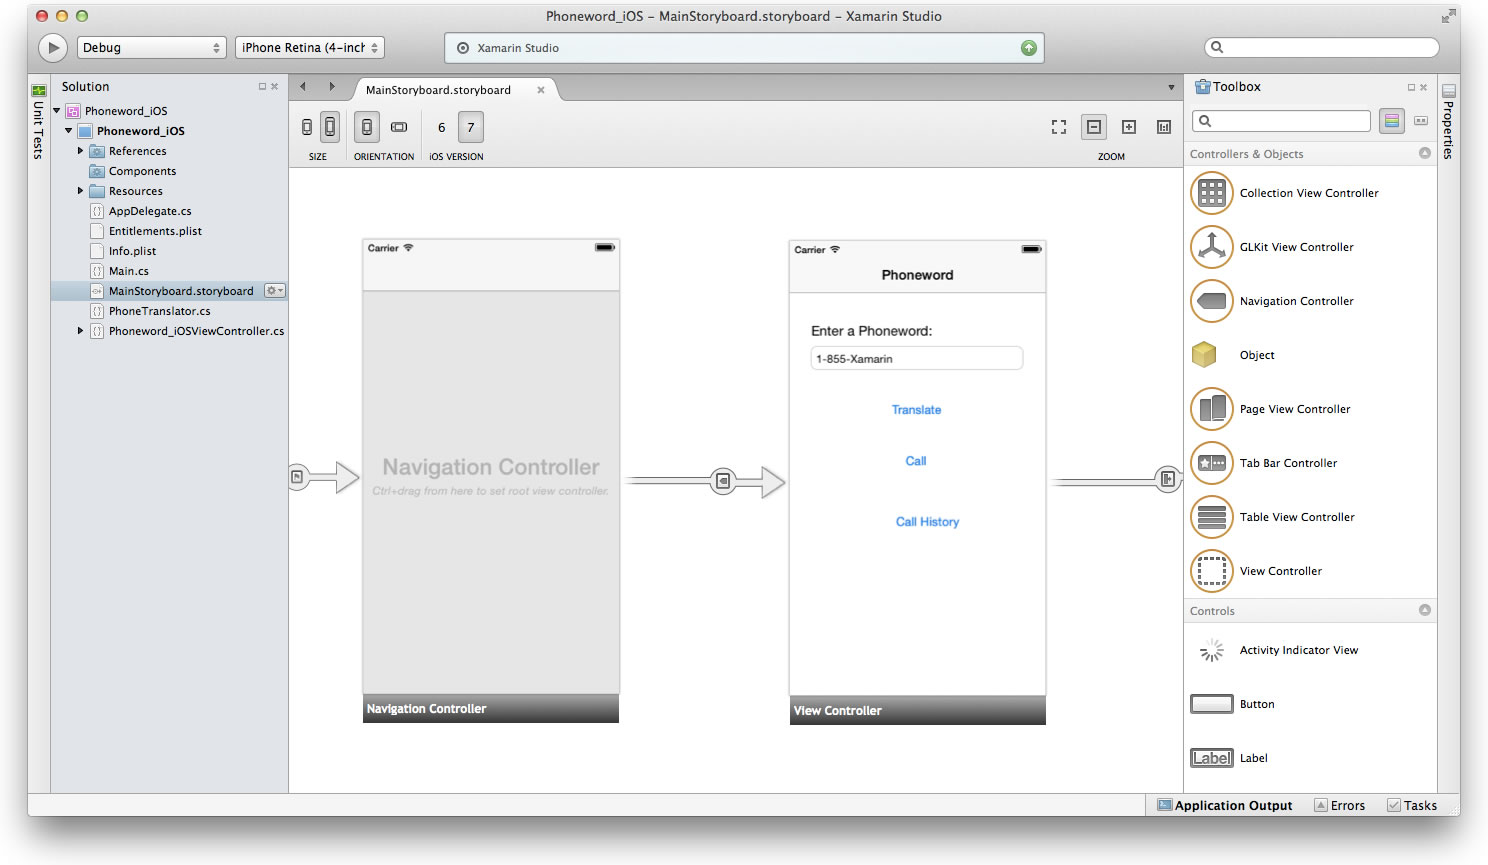 xamarin 3 interface